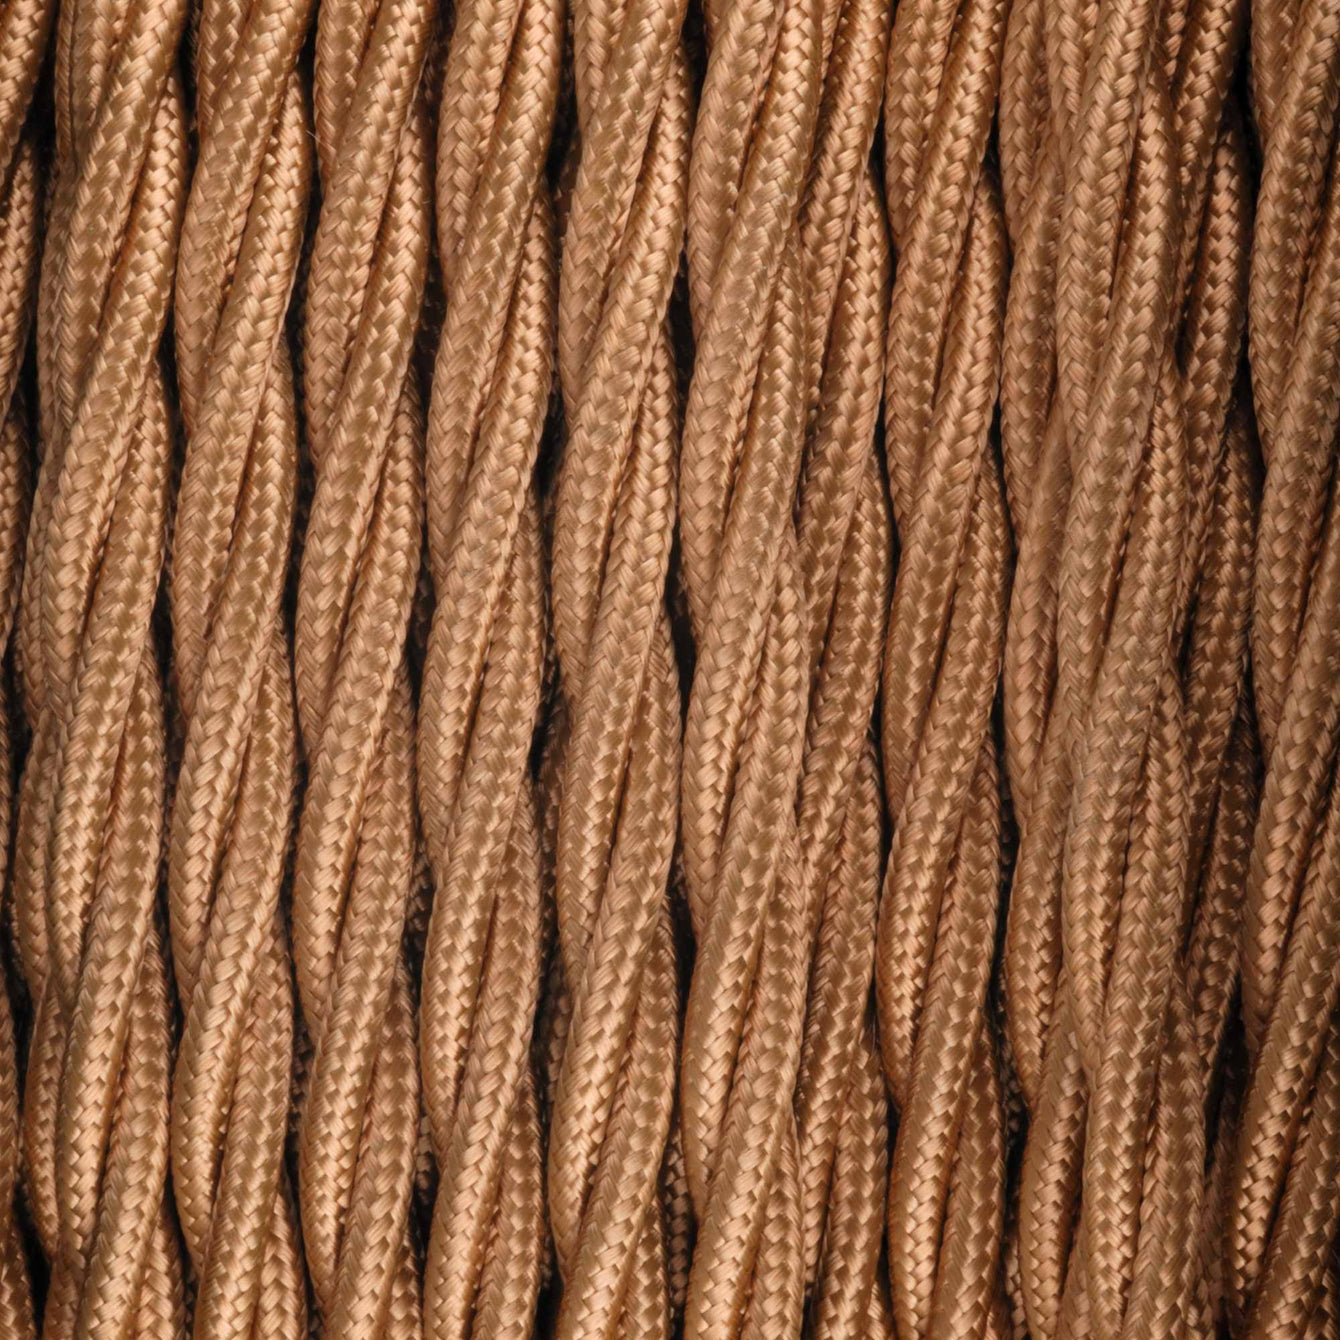 ElekTek Twisted Braided Fabric Flex Per Linear Metre Colours - Buy It Better Black (Bronze)